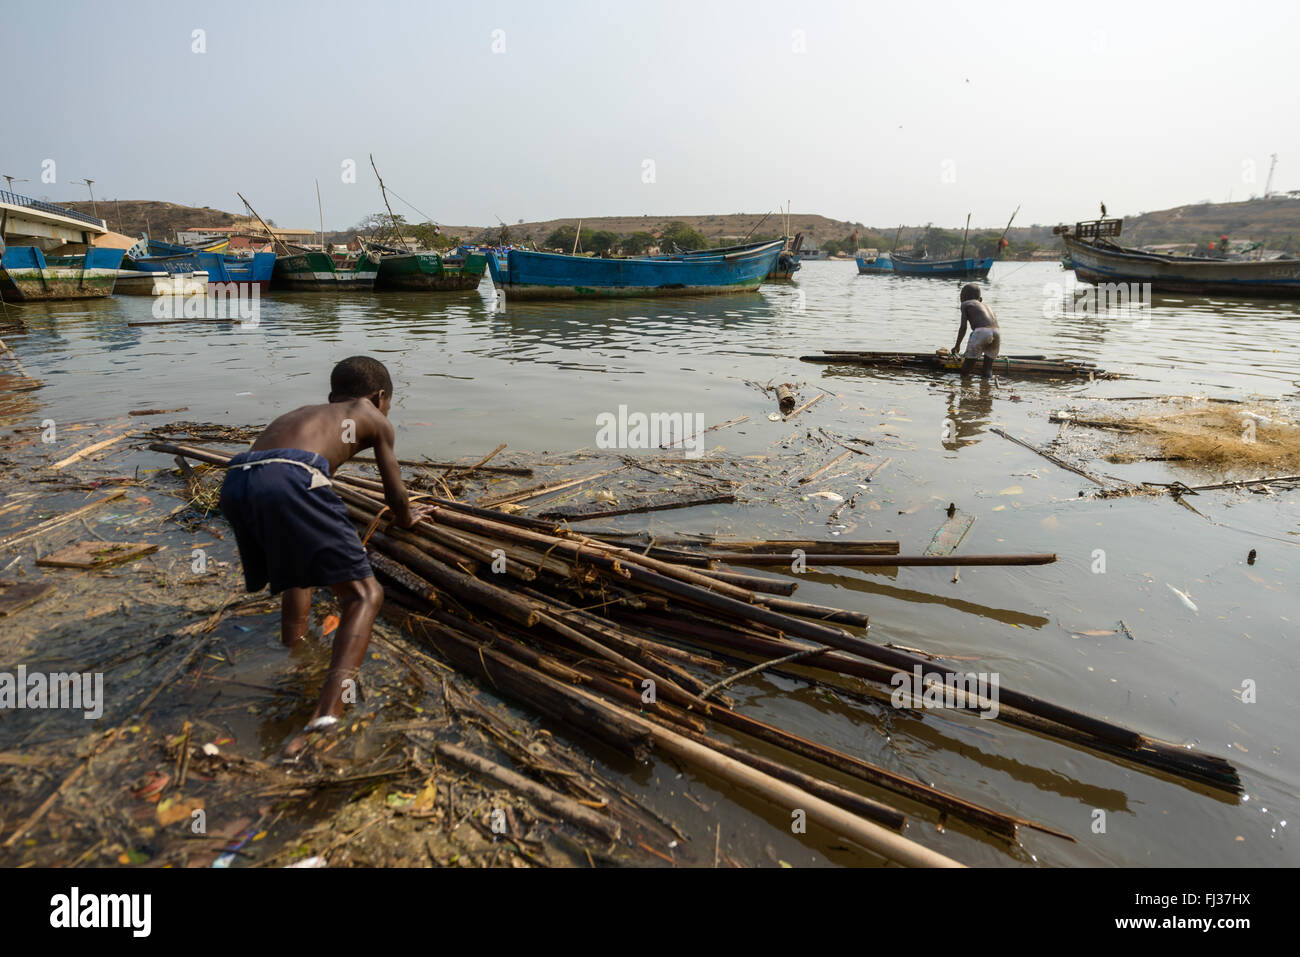 Boys gather wood, Angola, Africa - Stock Image